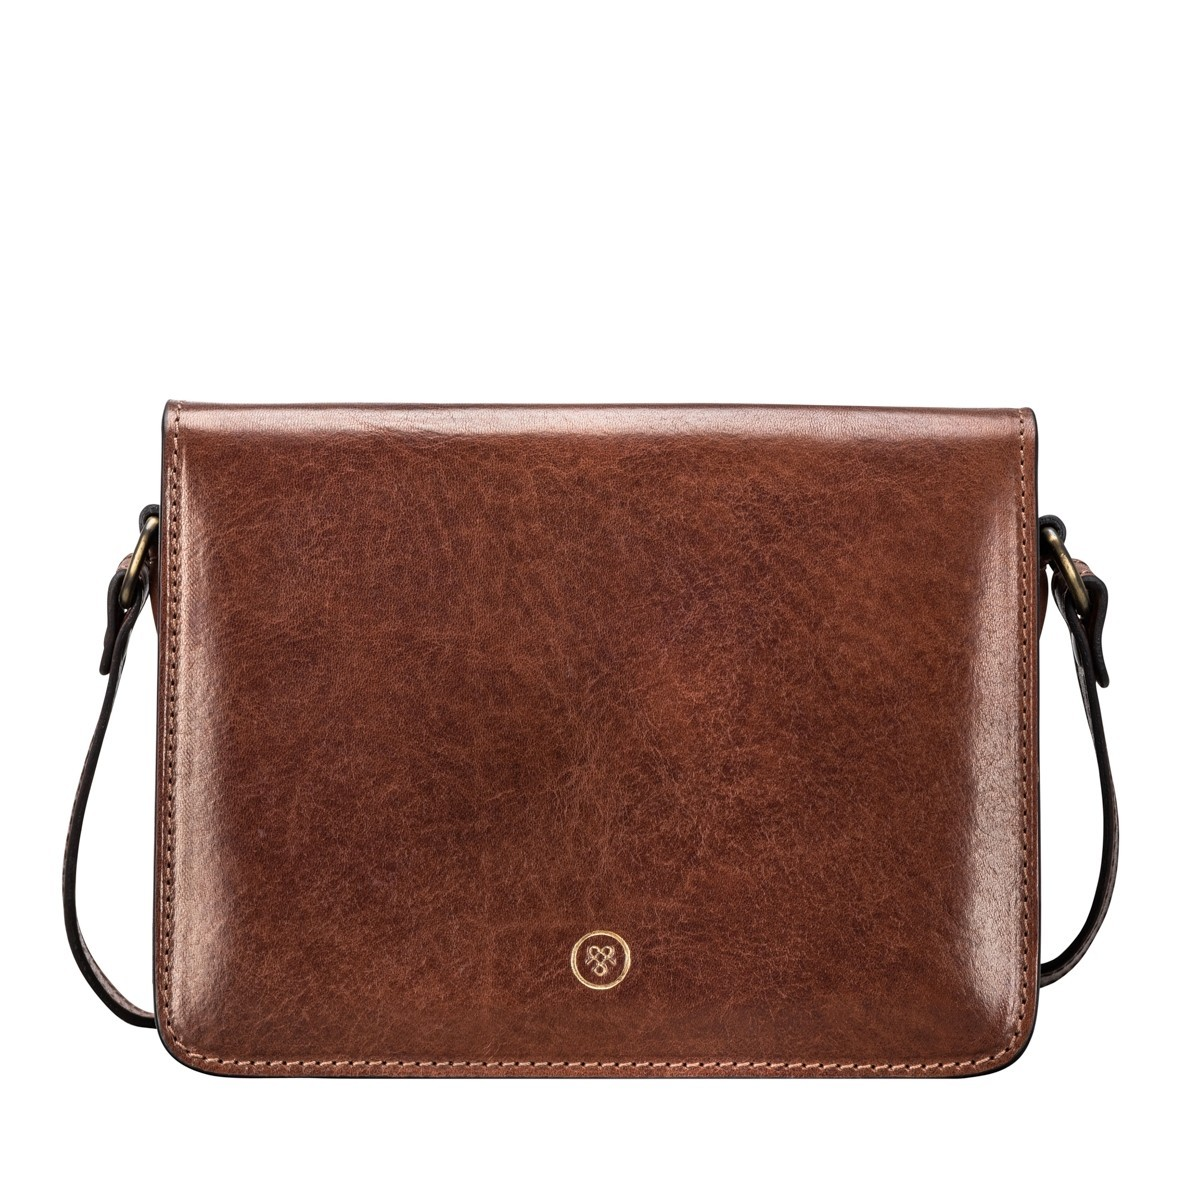 029ced32db6f The Lucca - Luxury Small Leather Shoulder Bag for Ladies